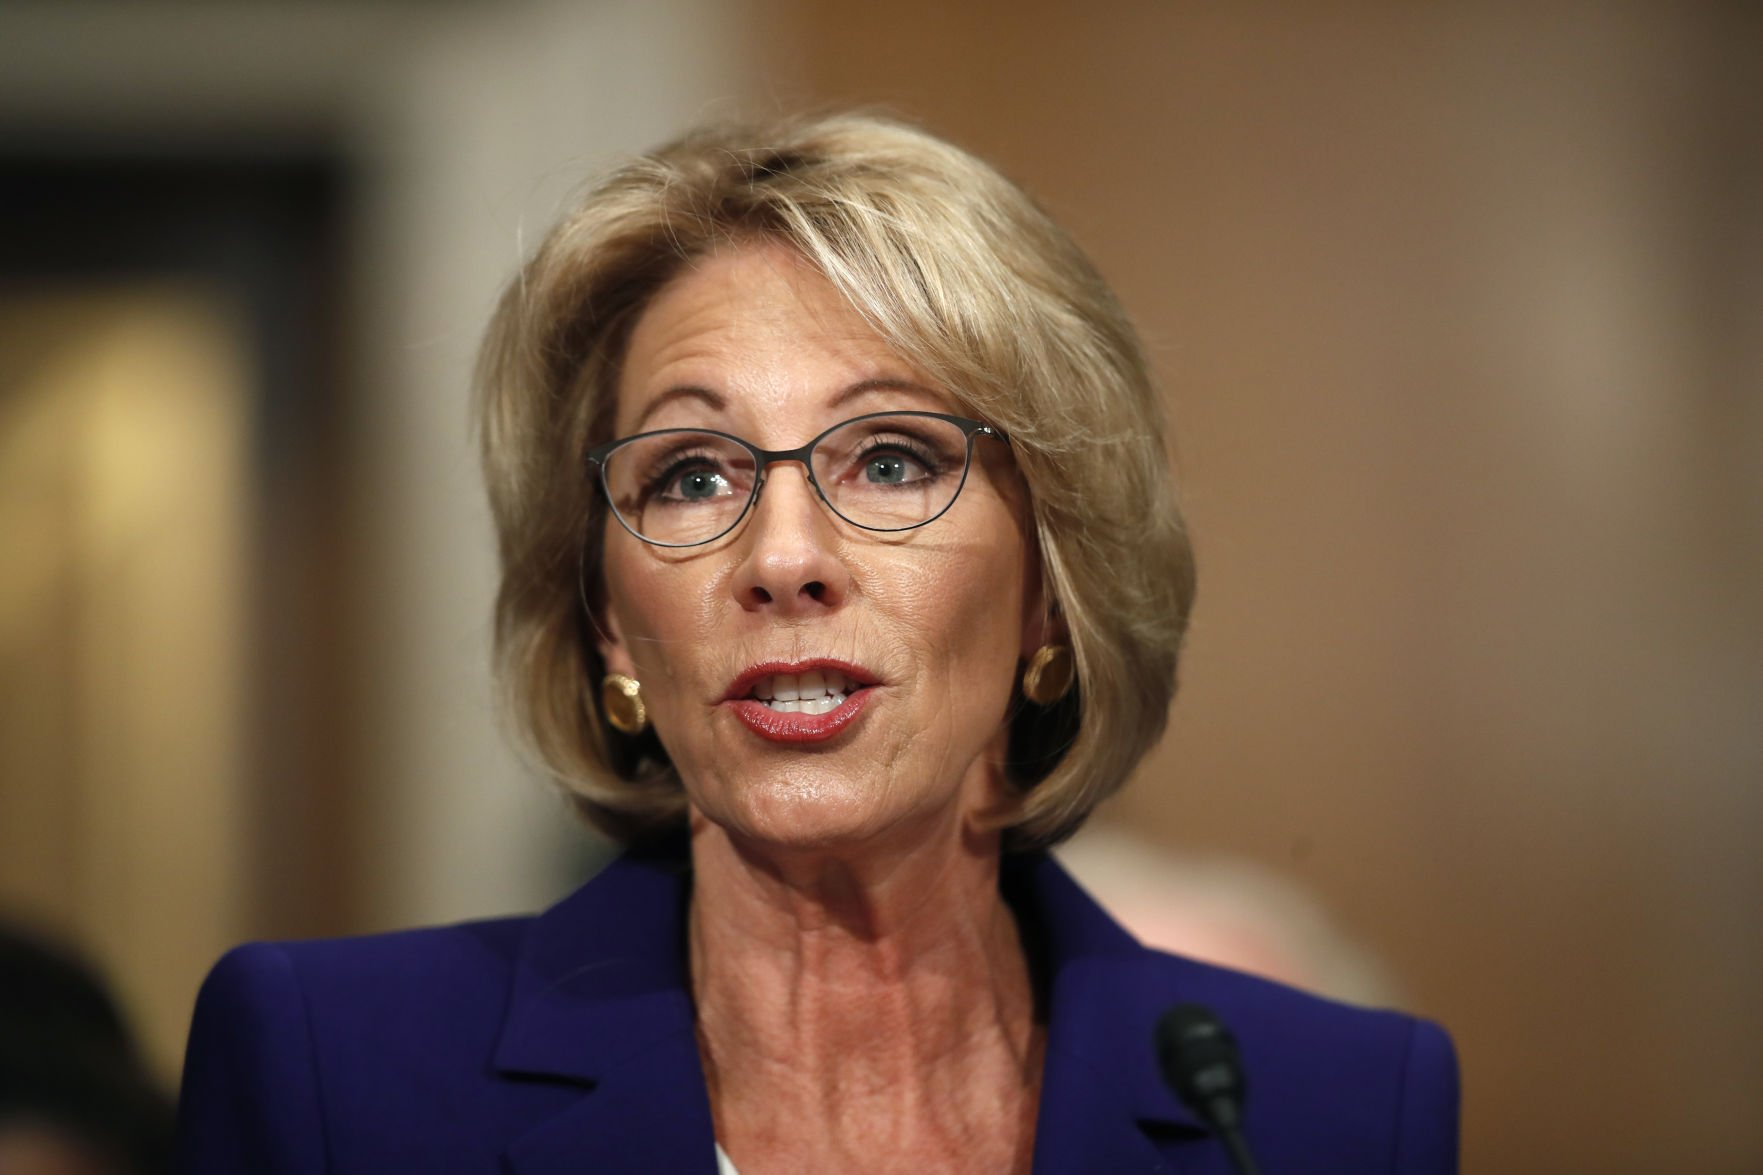 Toomey pops left's bubble - will back Trump education nominee Betsy DeVos